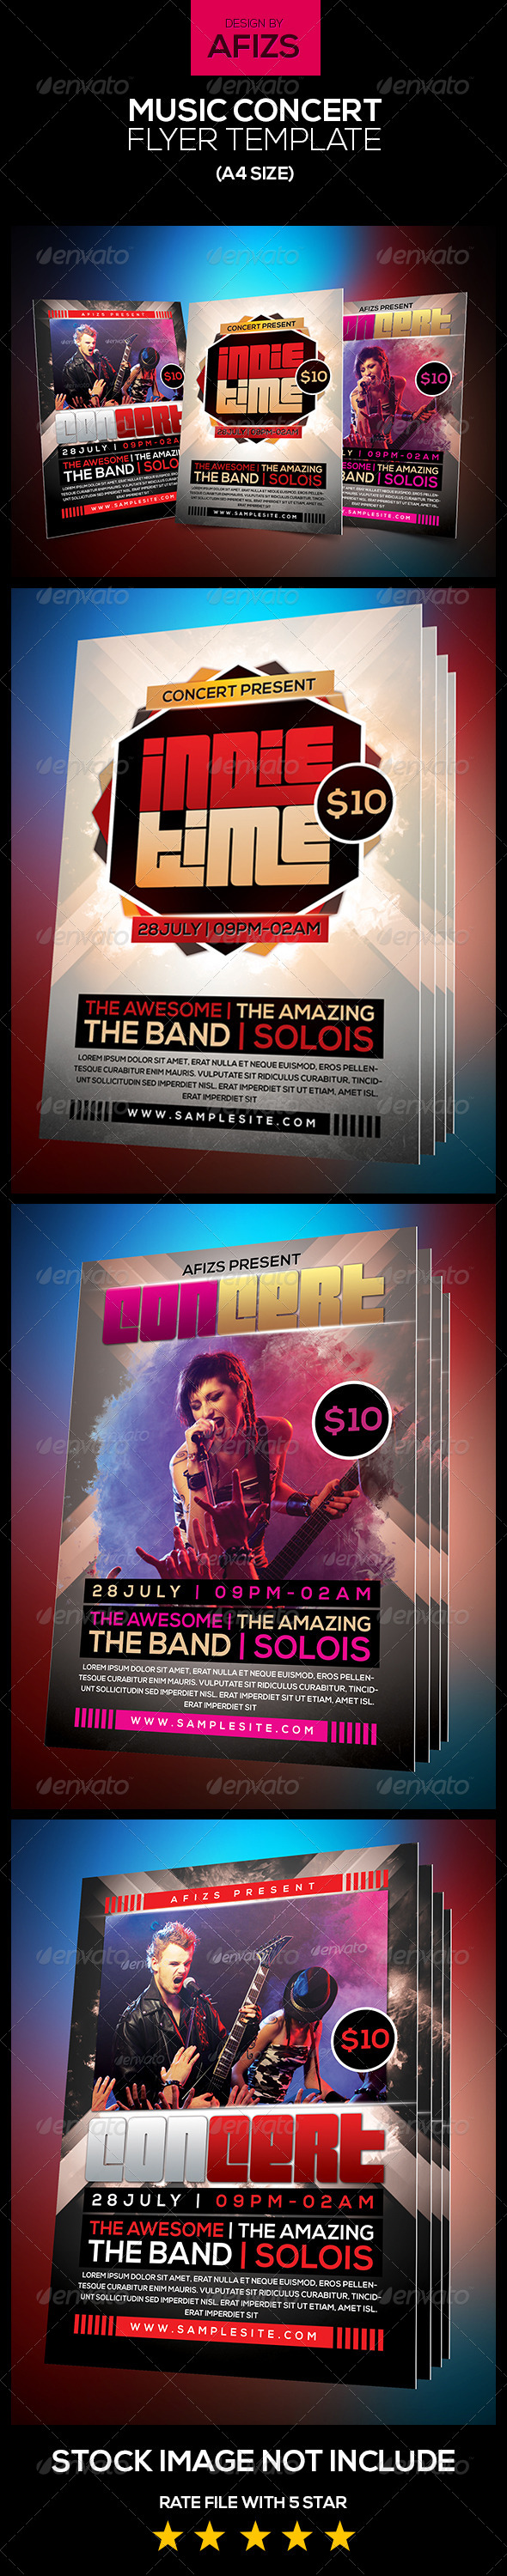 GraphicRiver Music Concert Flyer Template 5670548